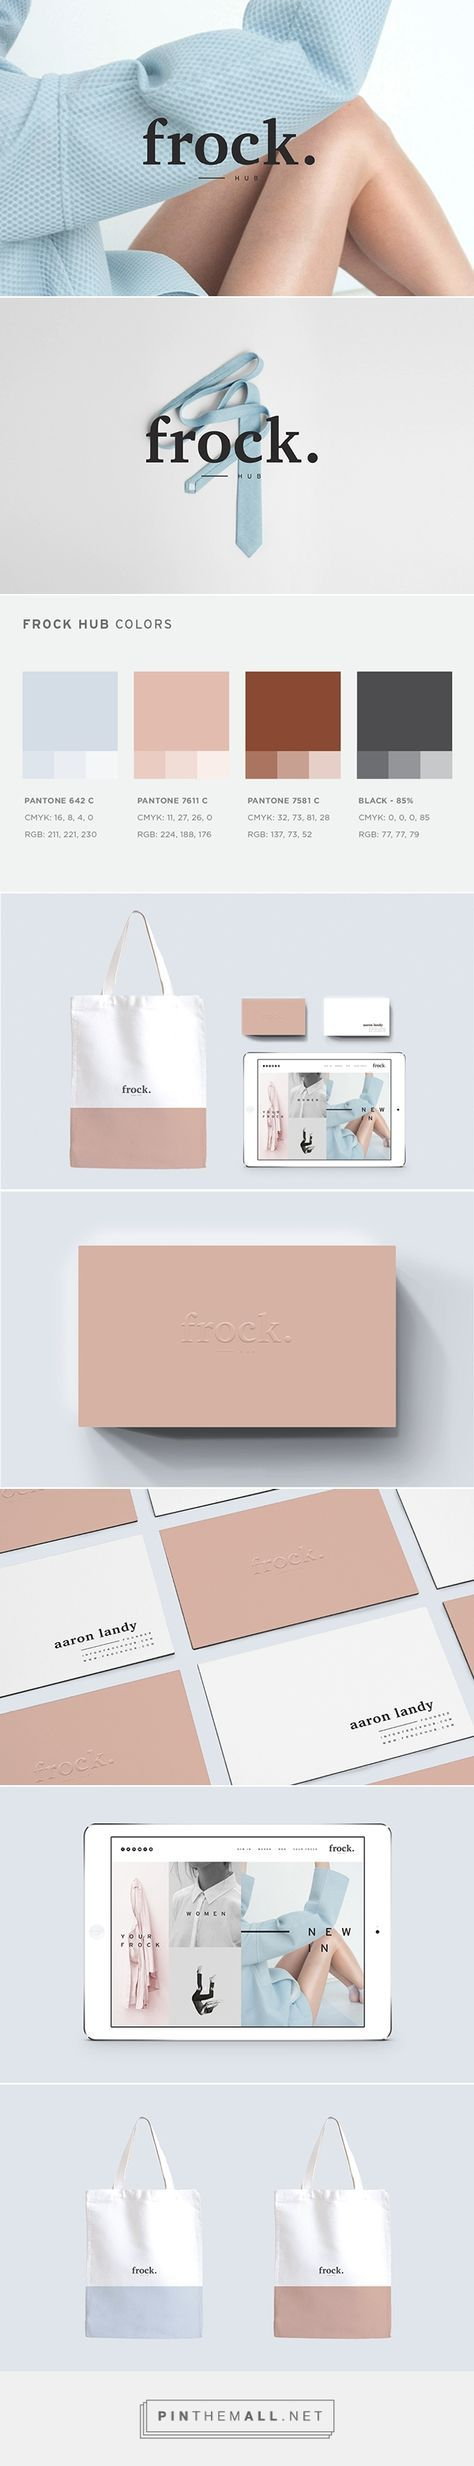 #branding #fashion #colorpalette                                                                                                                                                                                 Más